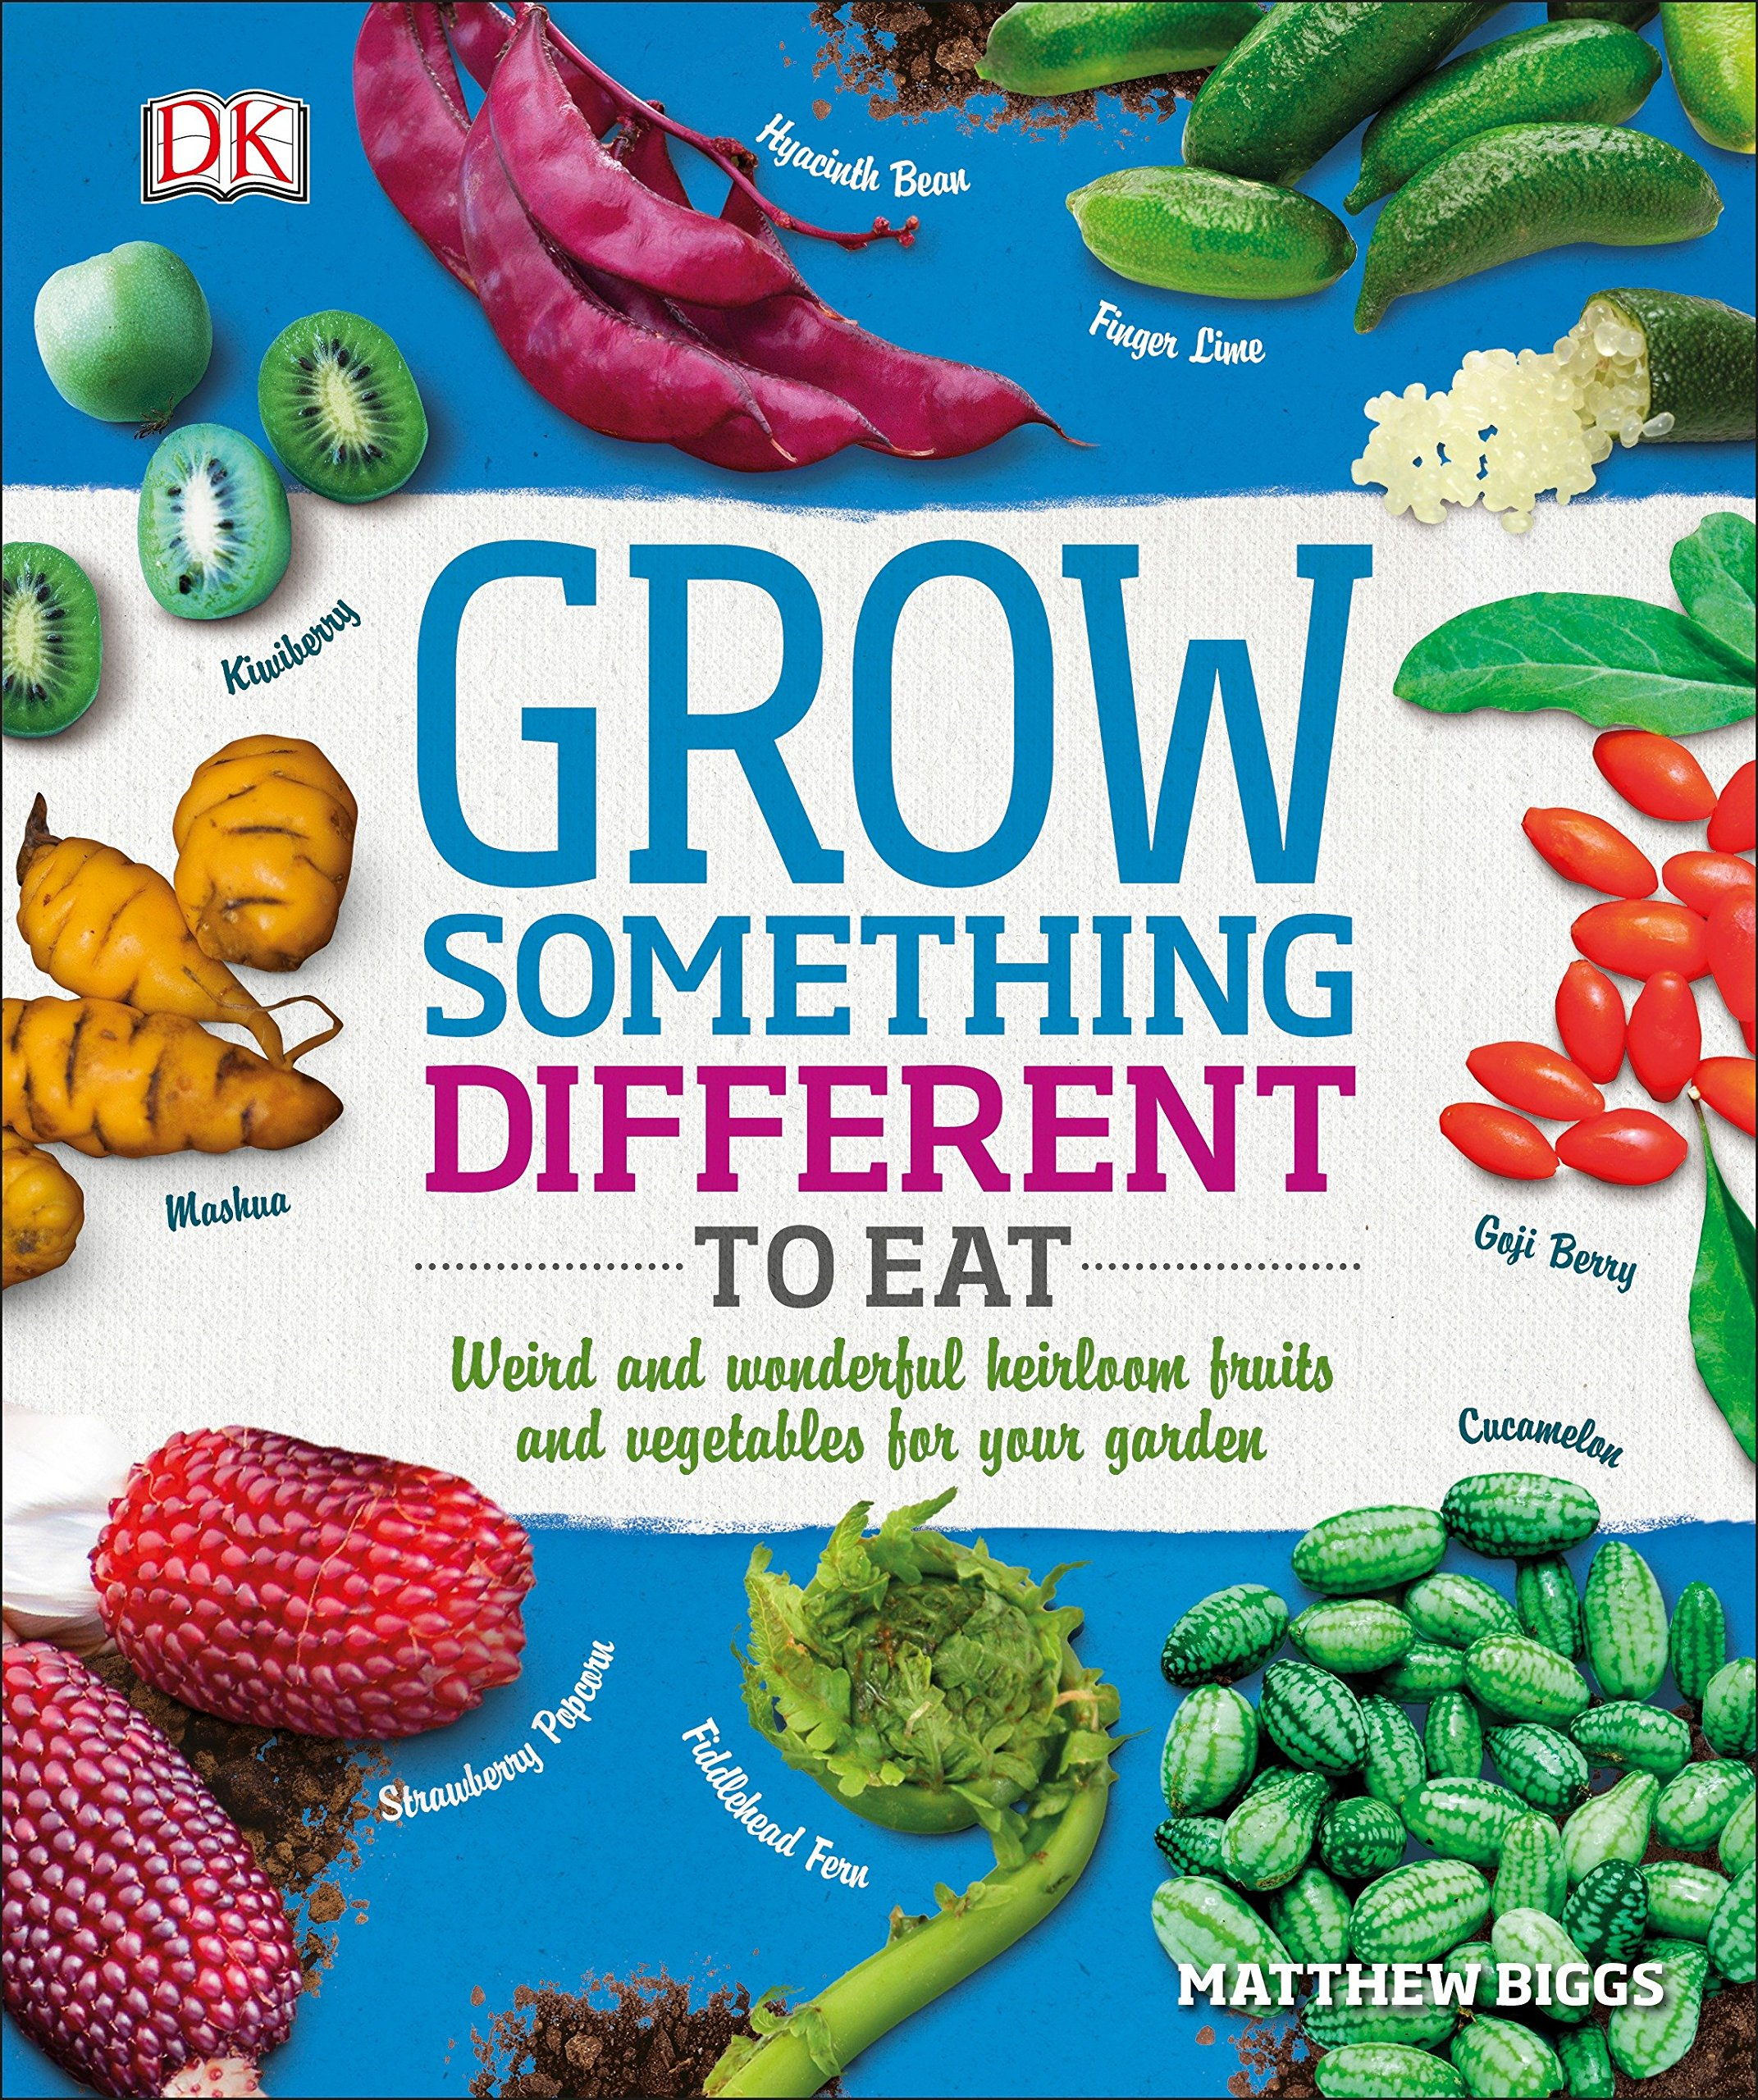 Grow Something Different to Eat: Weird and wonderful heirloom fruits and vegetables for your garden Paperback – February 27, 2018 Matthew Biggs DK 1465464298 Techniques